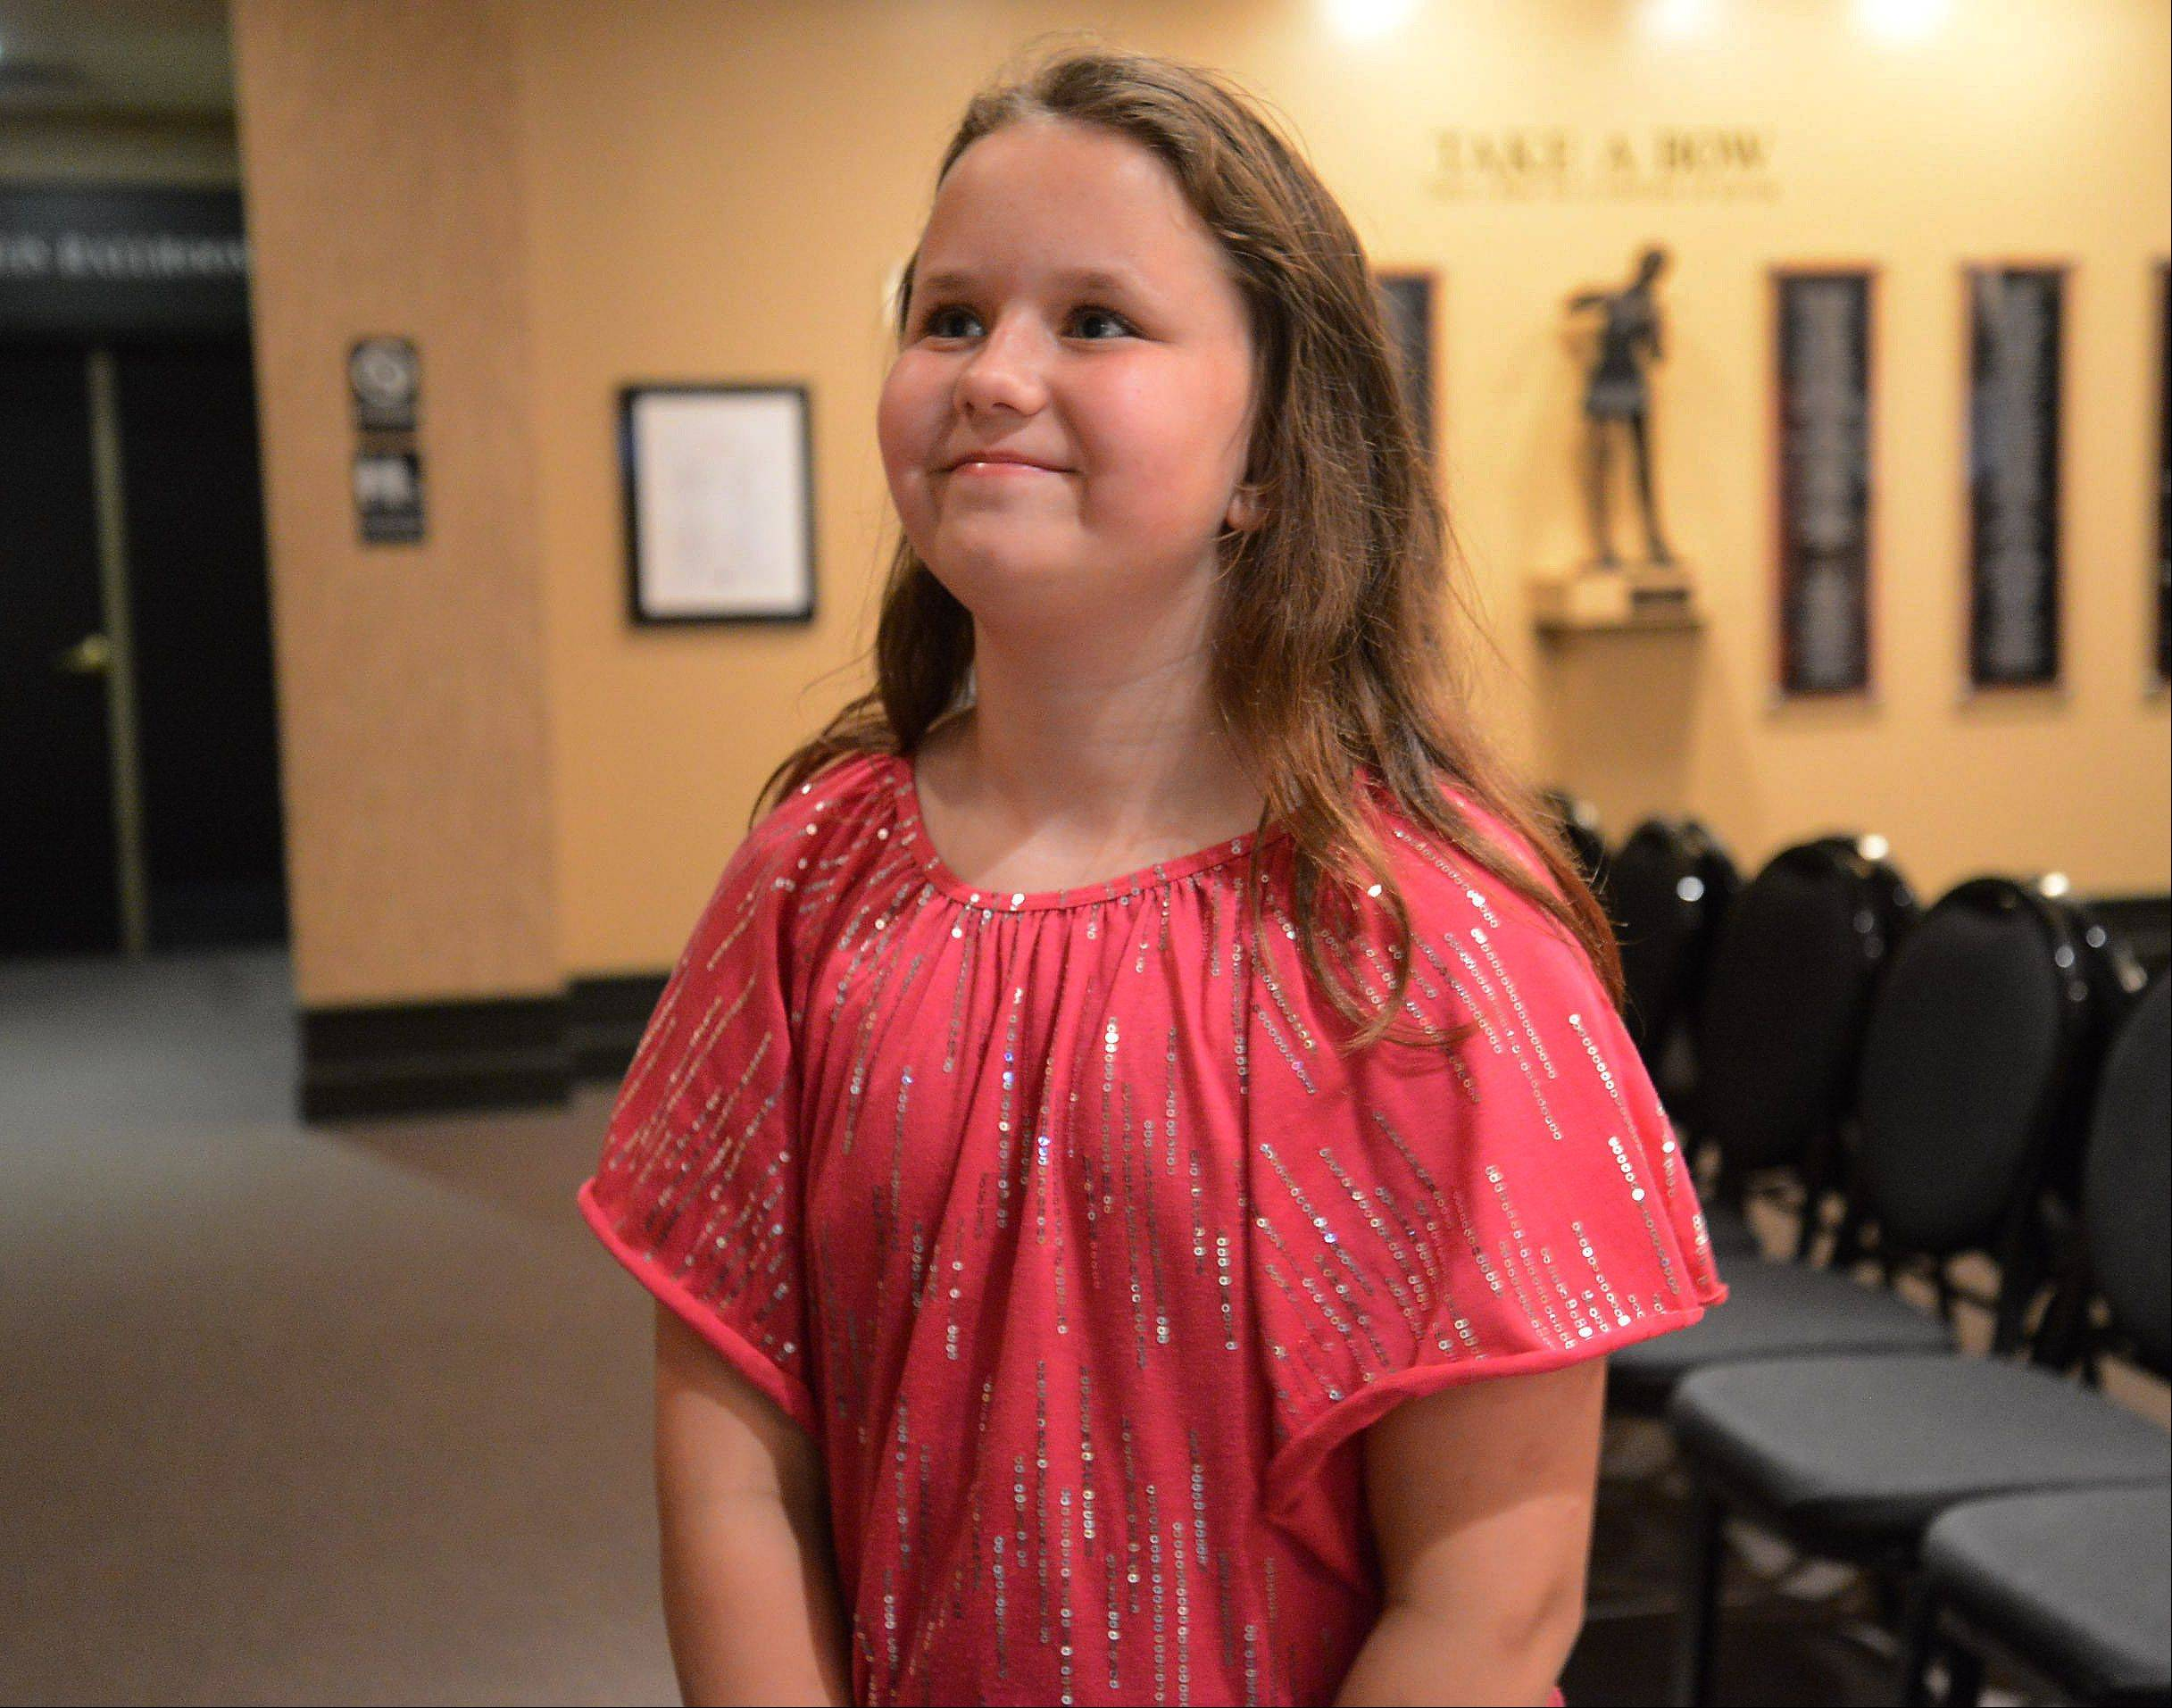 10-year-old Mary Hilbrink of Fox River Grove is pleased after her performance.